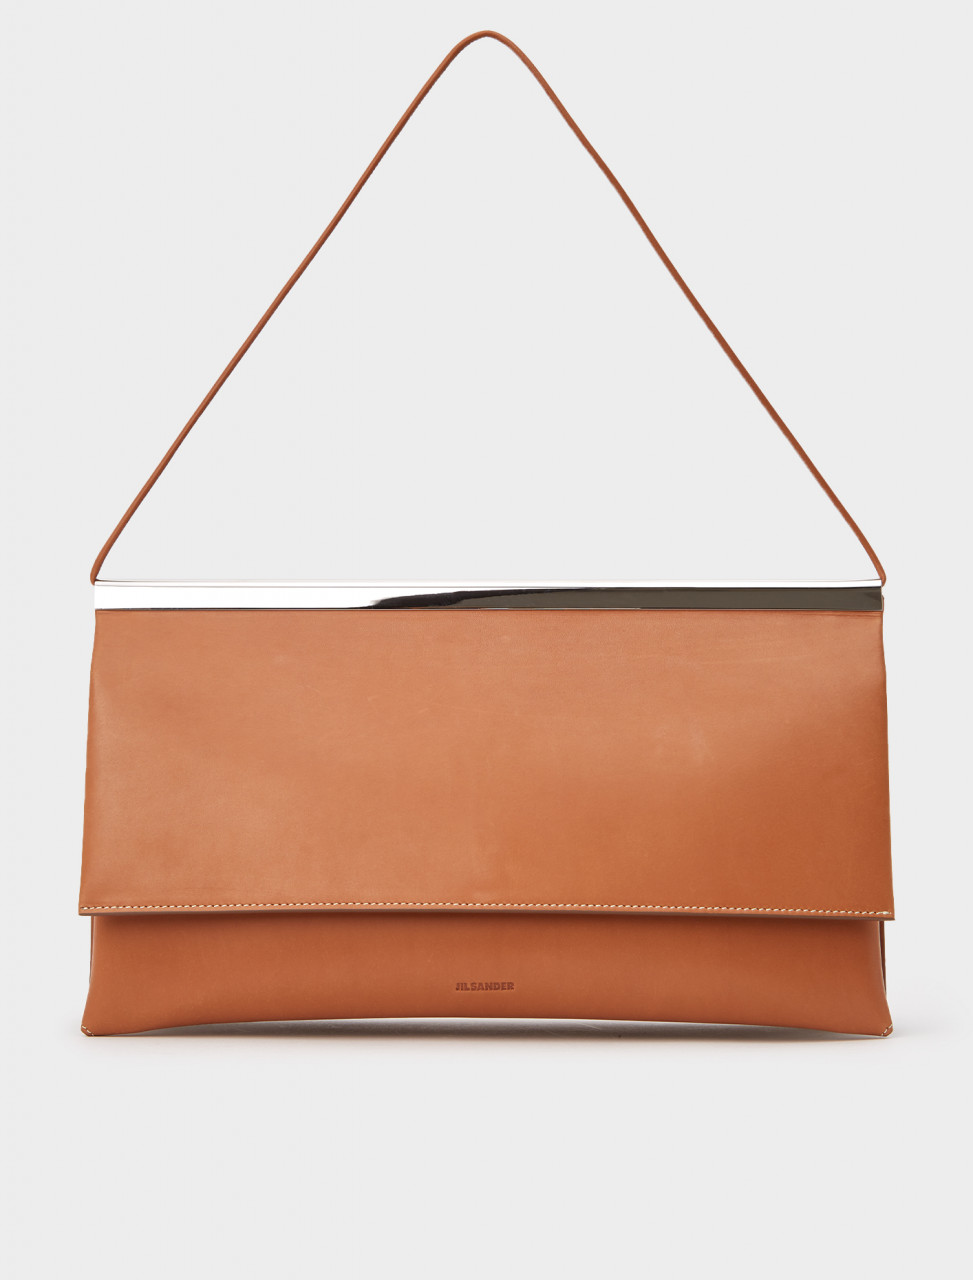 130-JSWR852474-WRB00078N-227 JIL SANDER SHOULDER BAG RUST